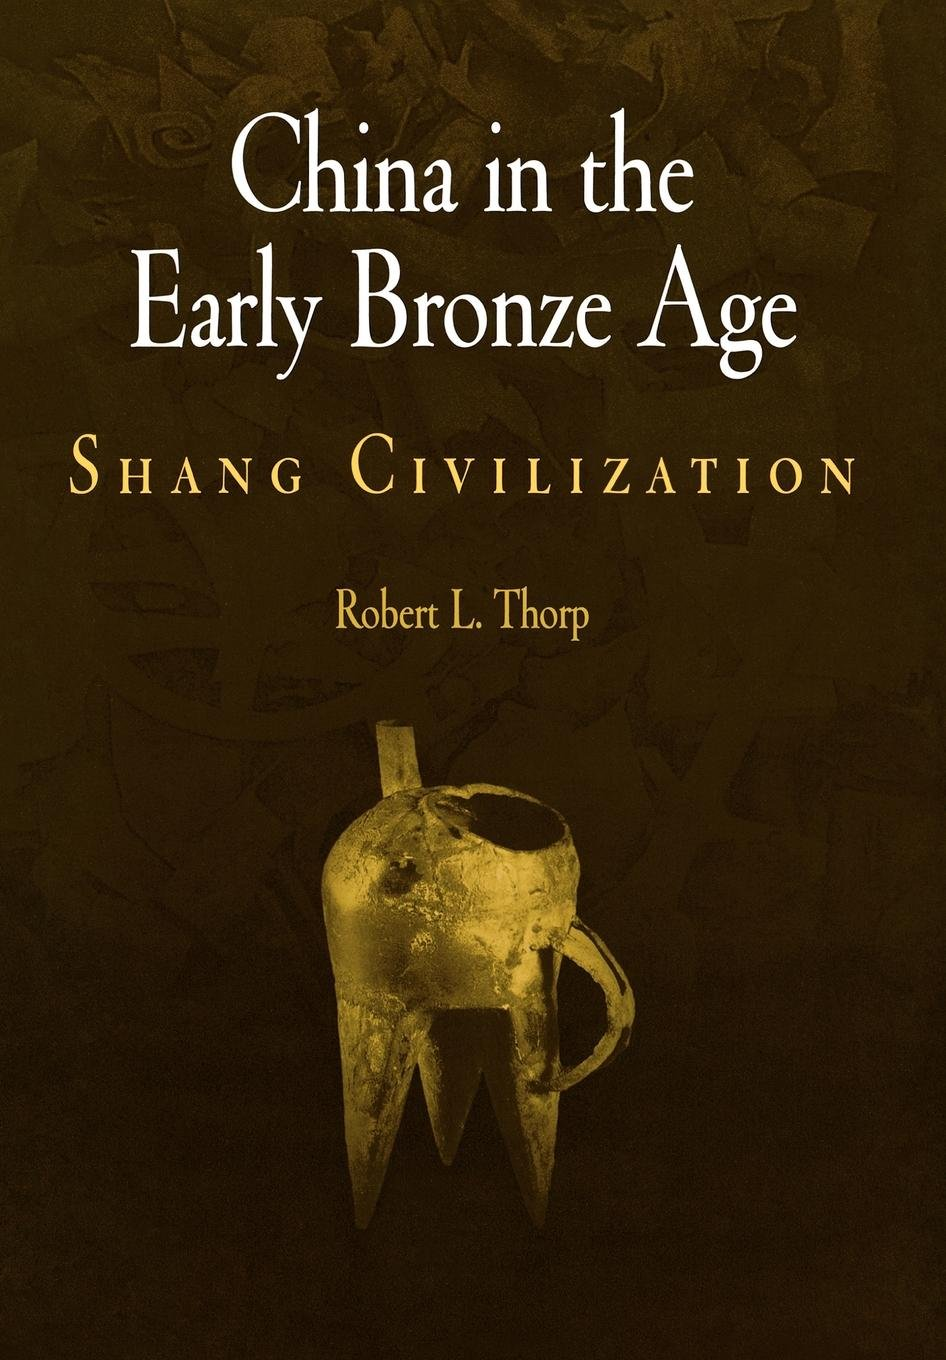 China in the Early Bronze Age: Shang Civilization (Encounters with Asia) pdf